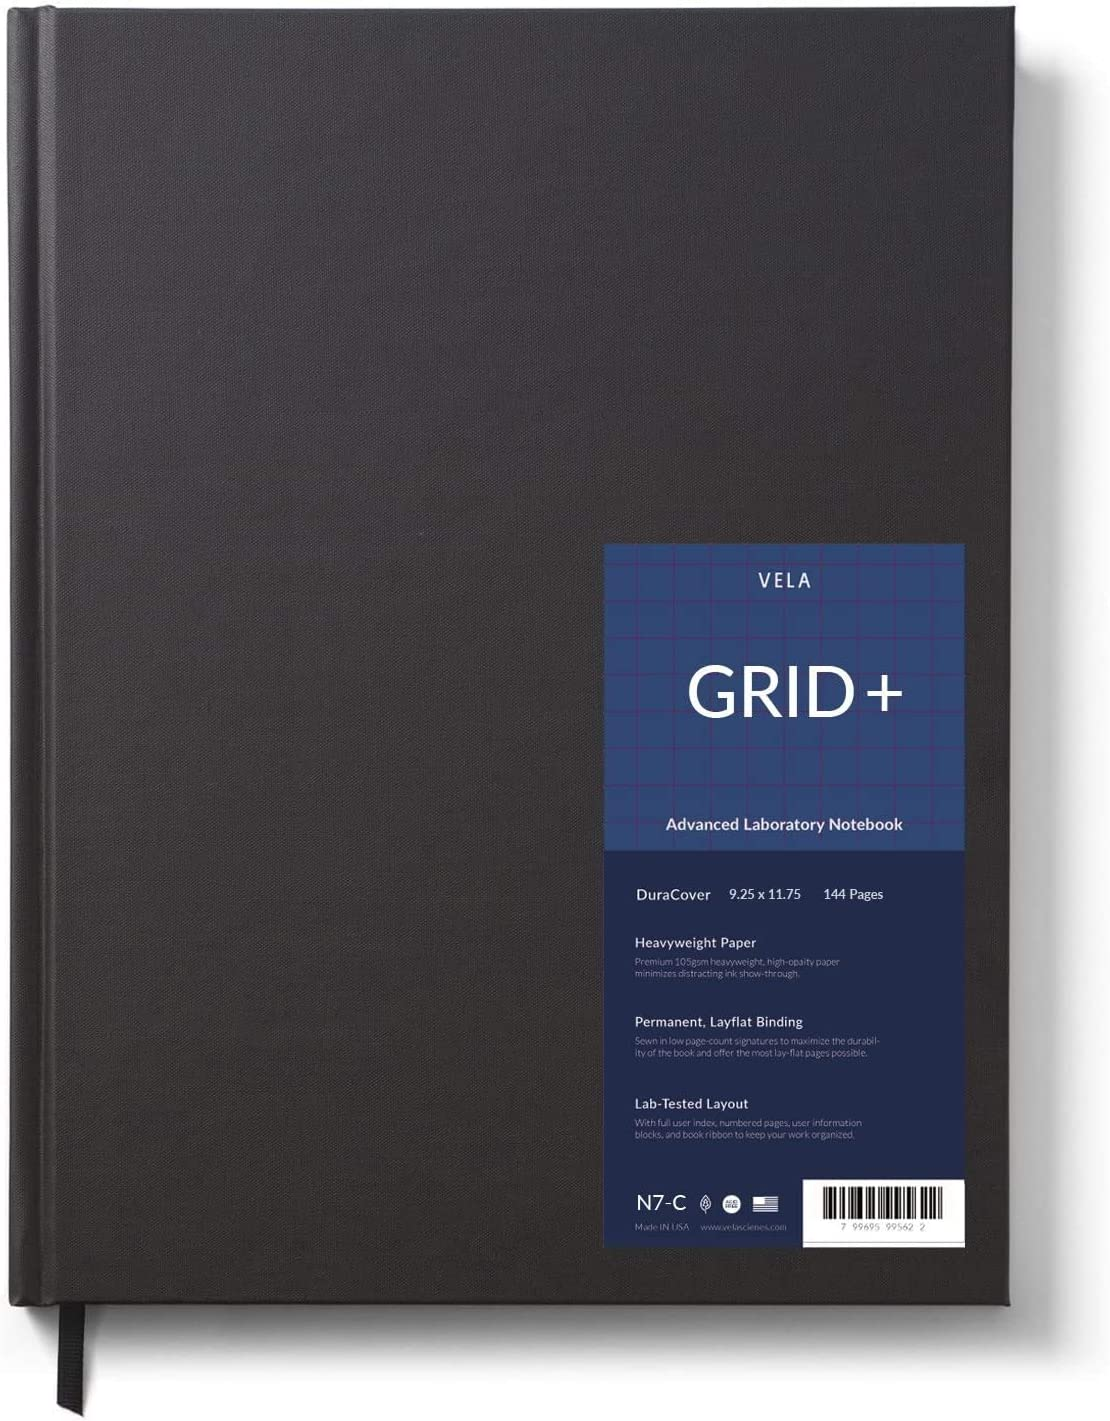 Vela Sciences N7-C Expanded Duracover Lab Notebook, 9.25 x 11.75 in, 144 Pages, Gray Cover (5mm Grid+, 1-Pack) : Office Products